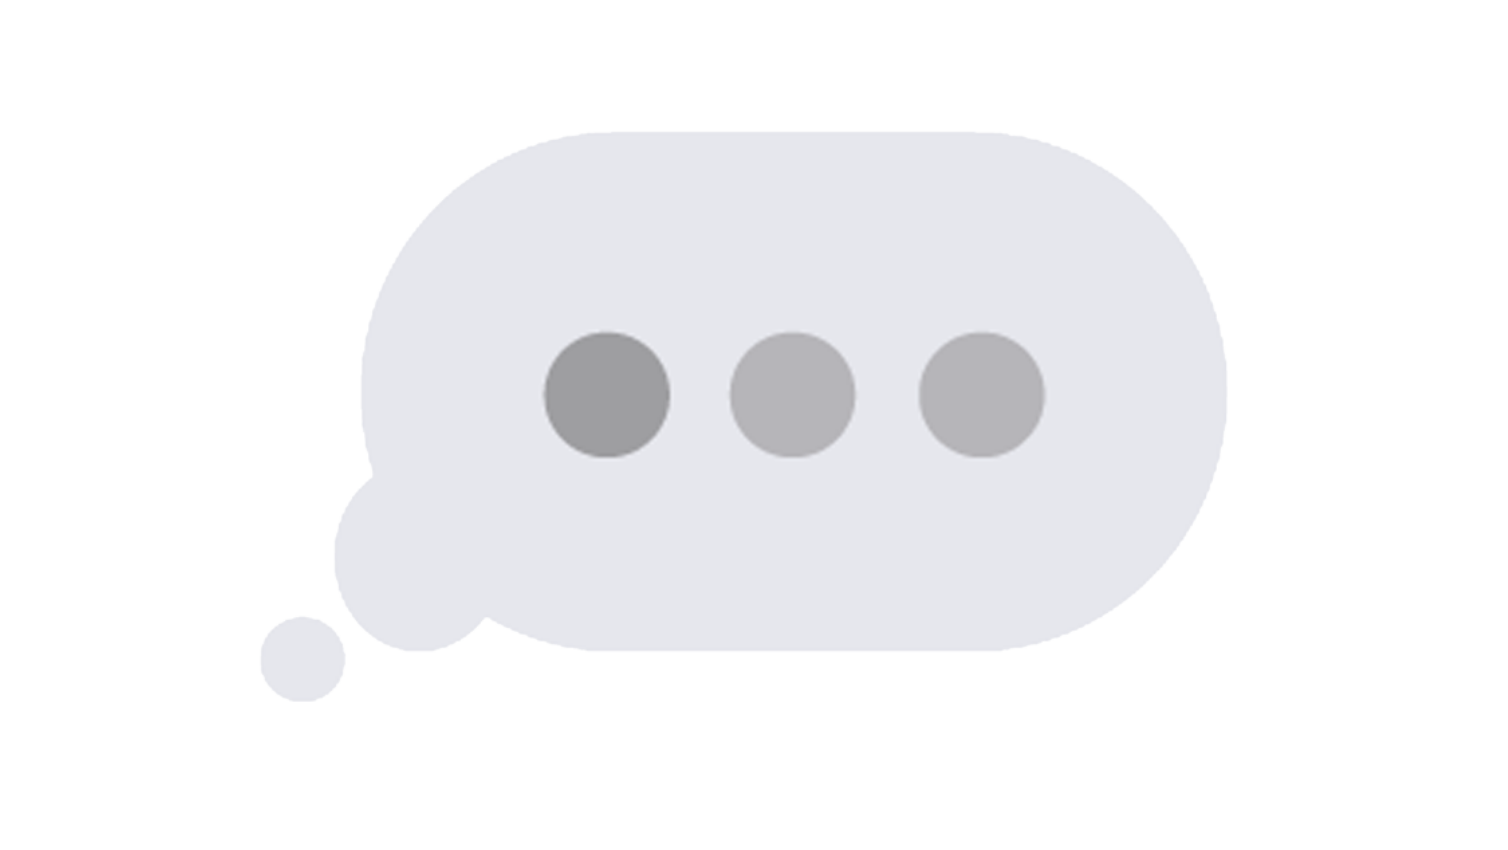 This tweak hides the typing indicator from your iMessage recipients.